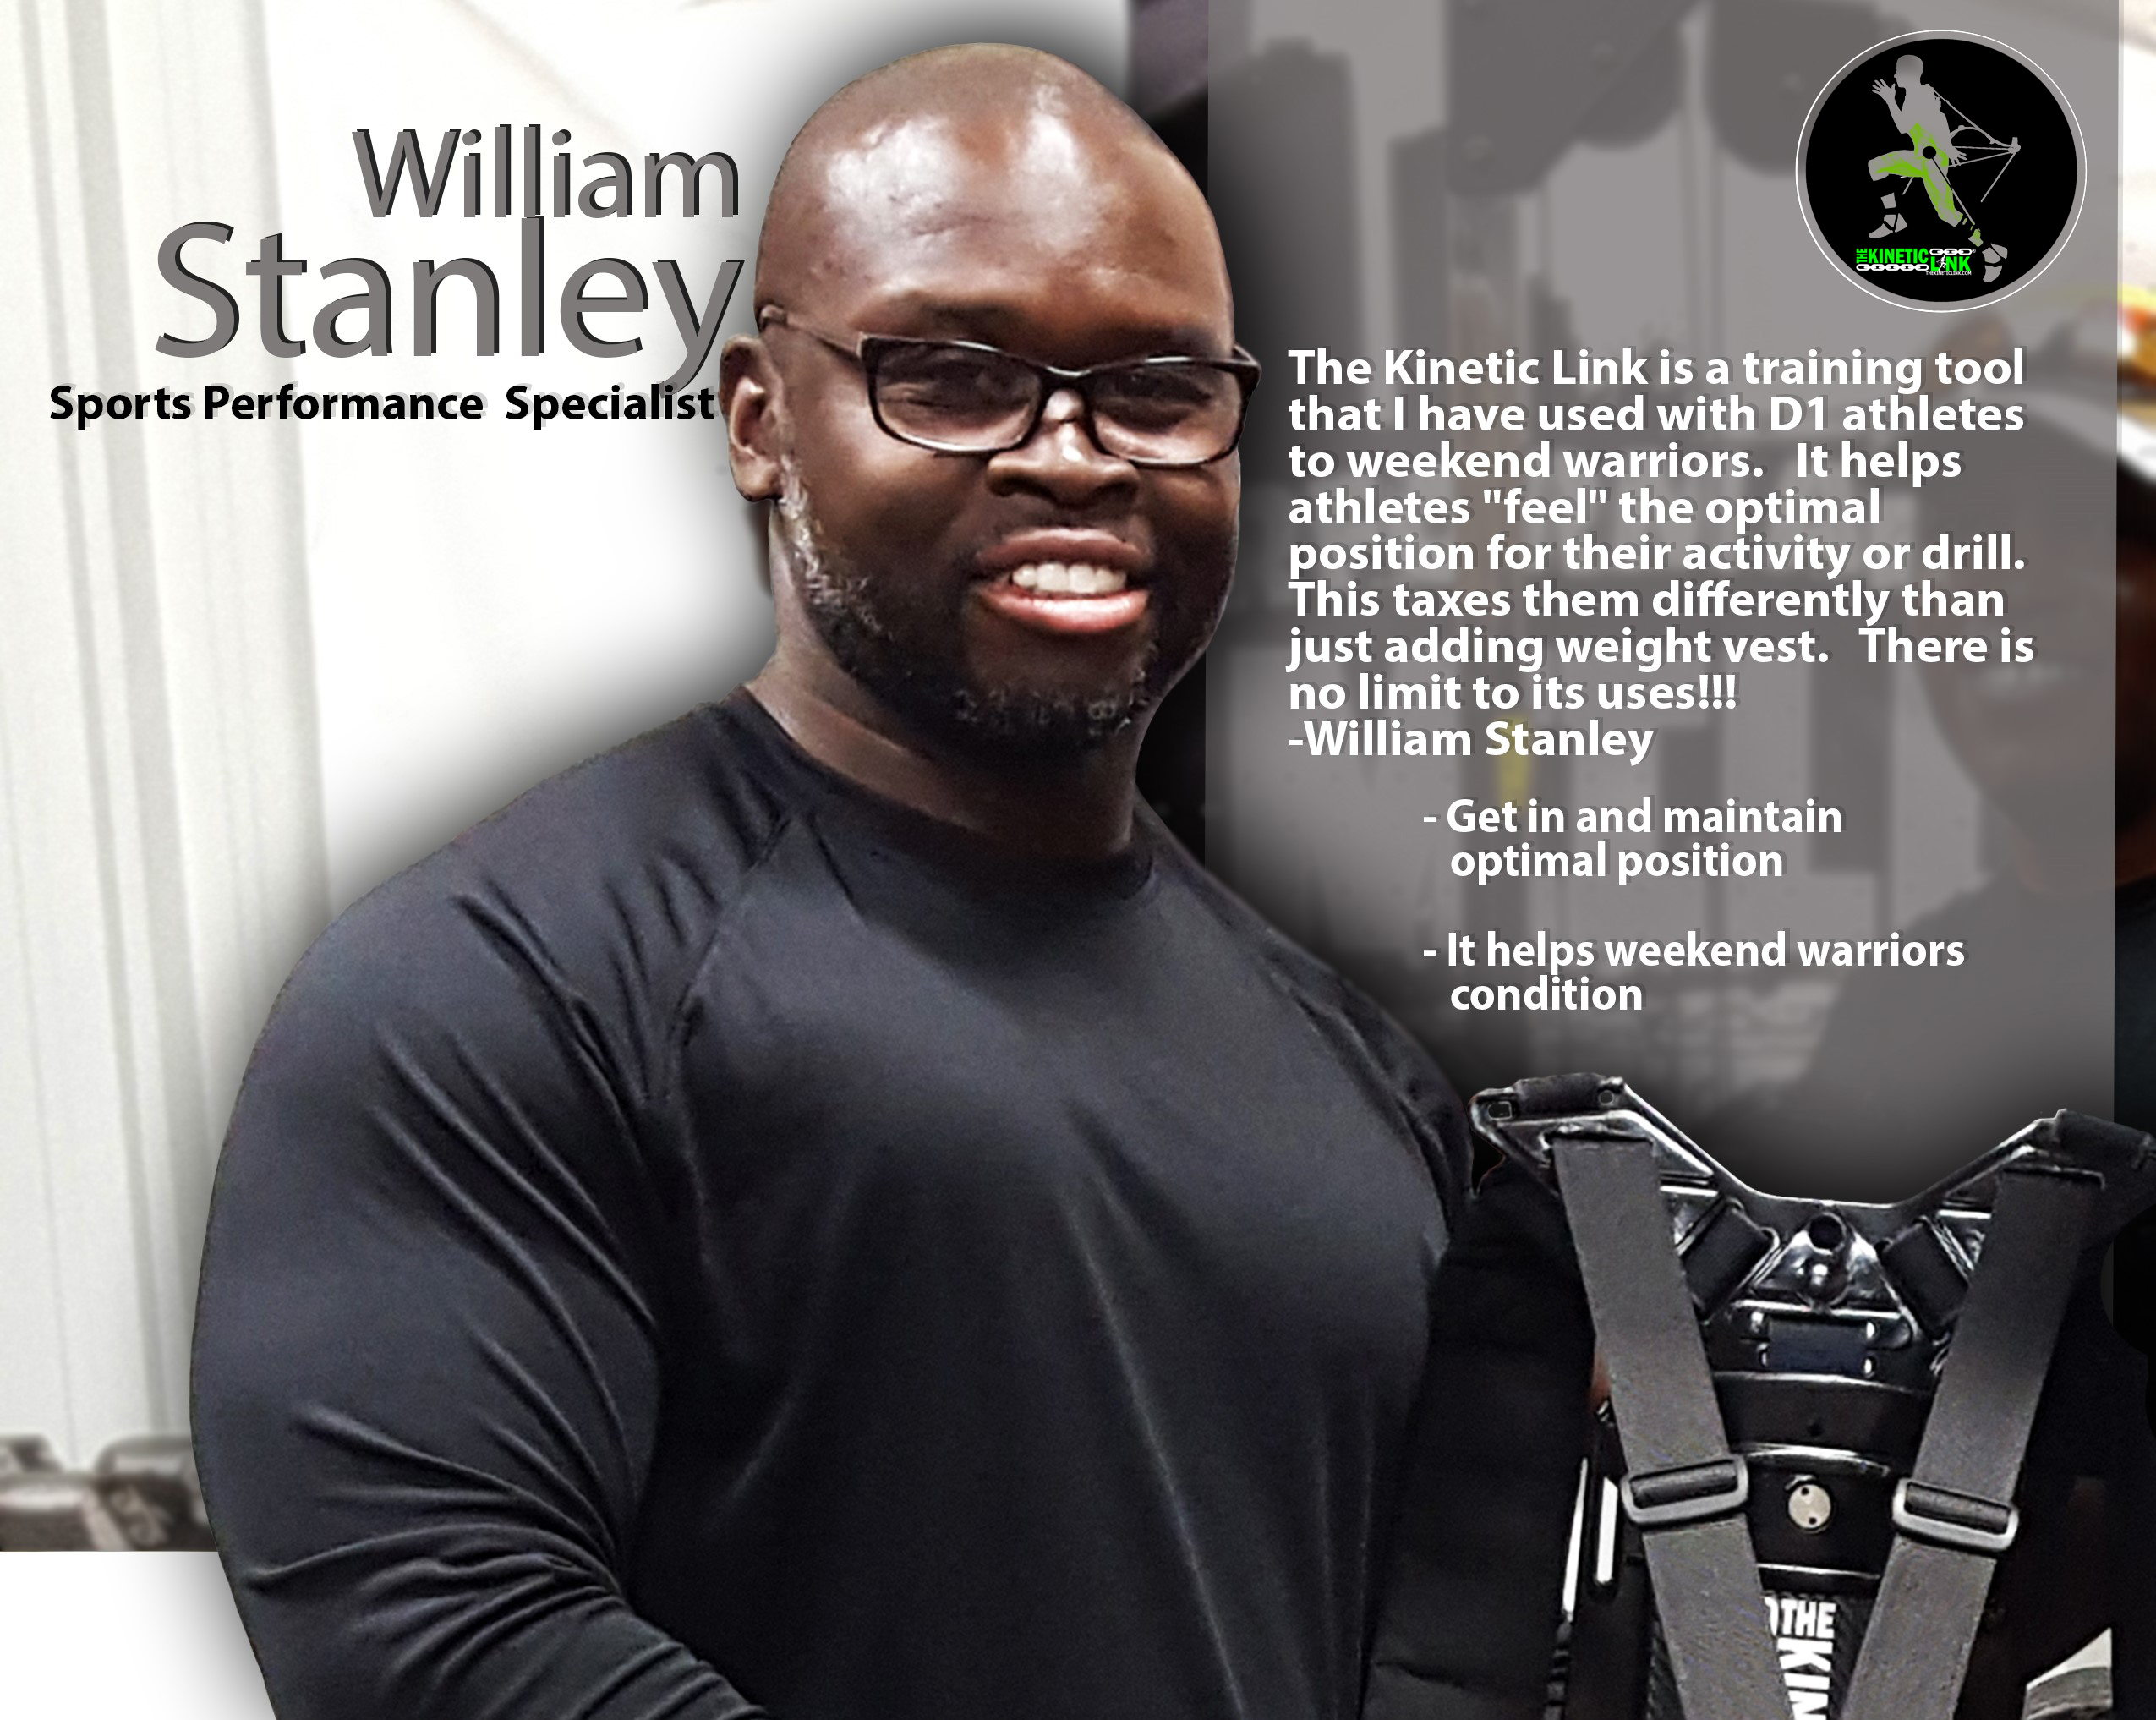 Will Stanley